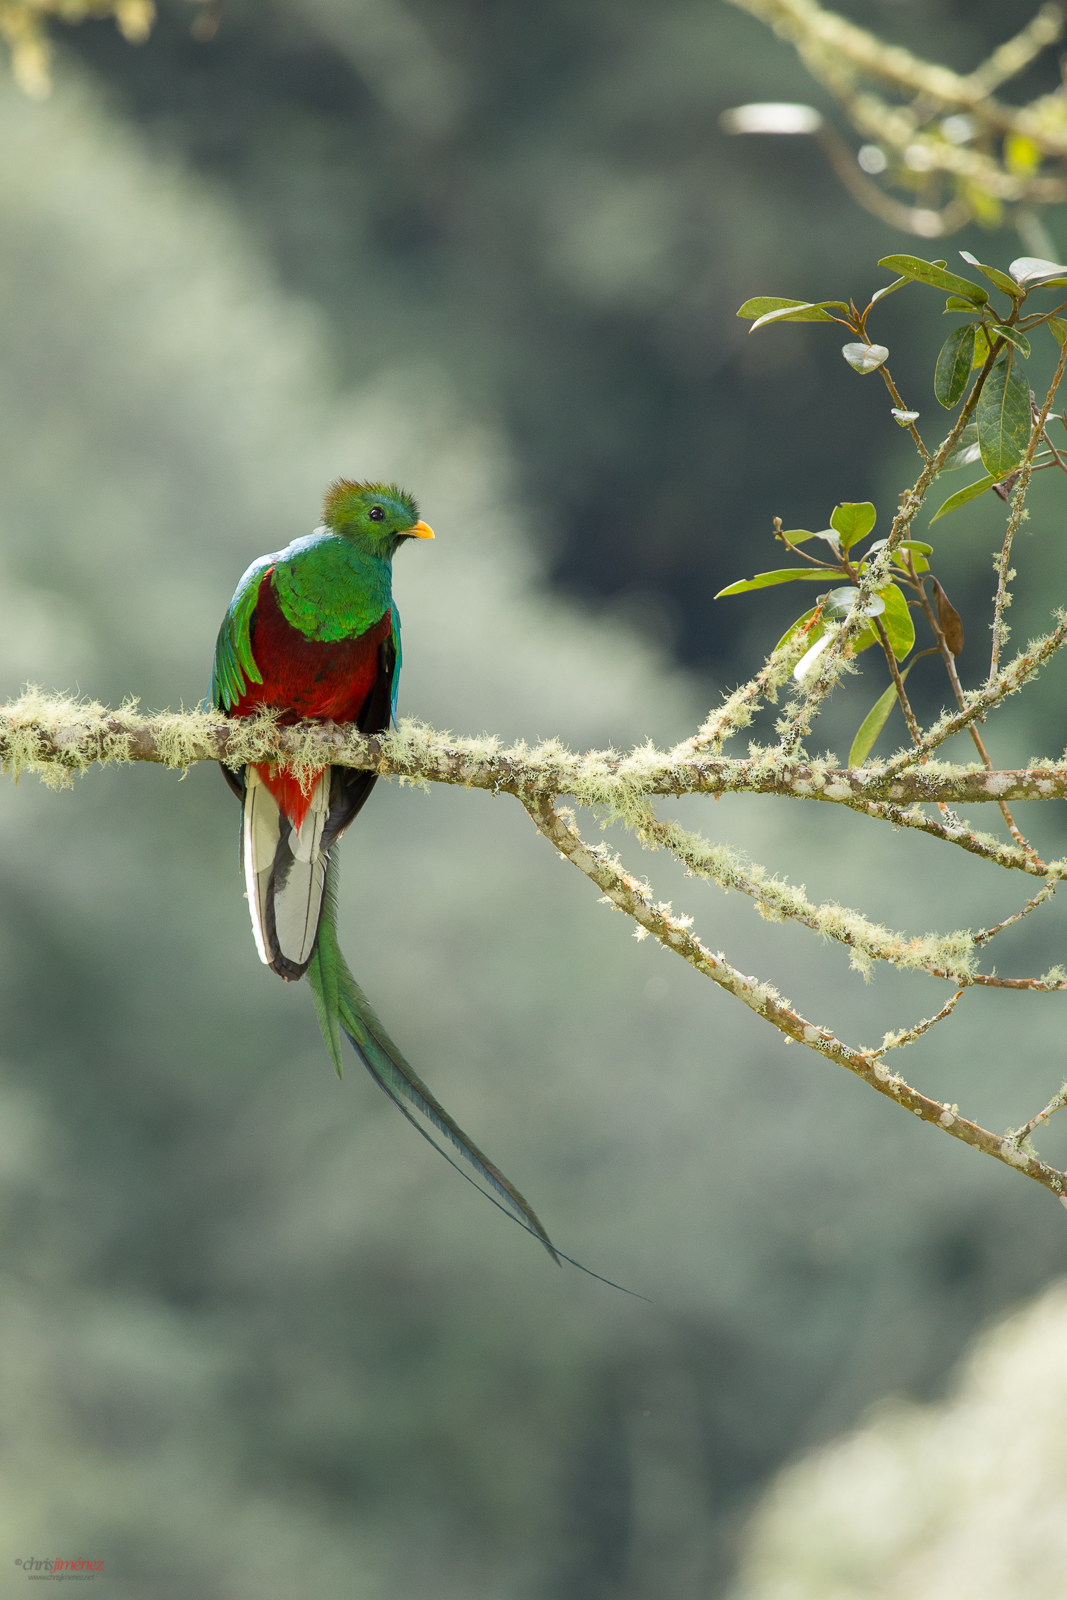 Resplendent Quetzal perched in the Highlands of Costa Rica in the morning